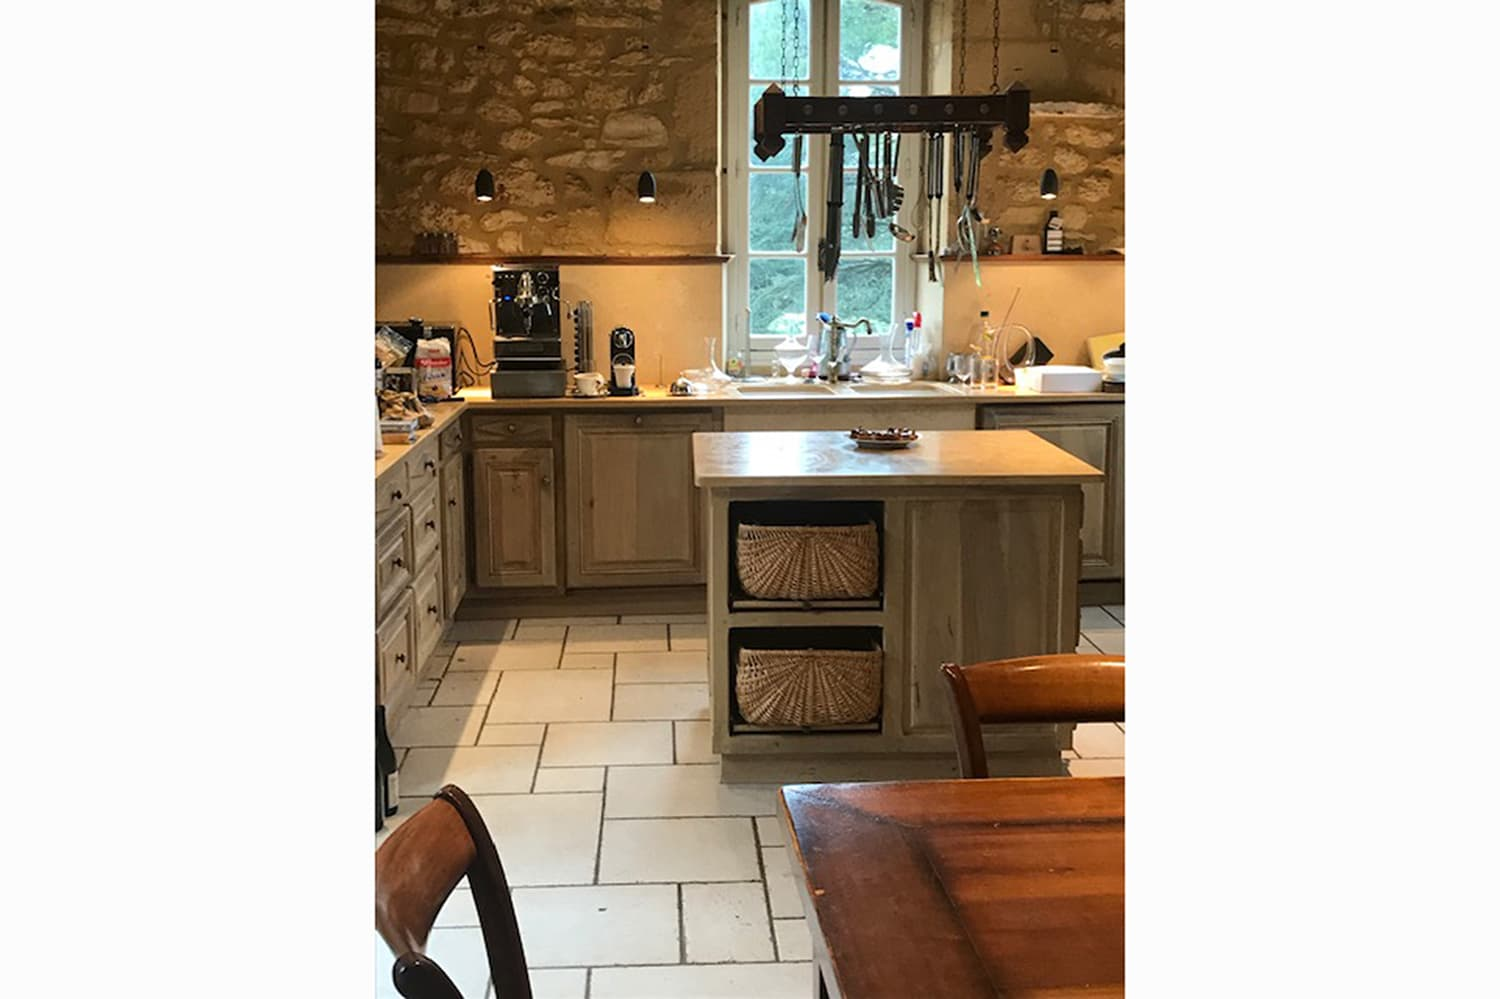 Kitchen in Carsac-Aillac rental home